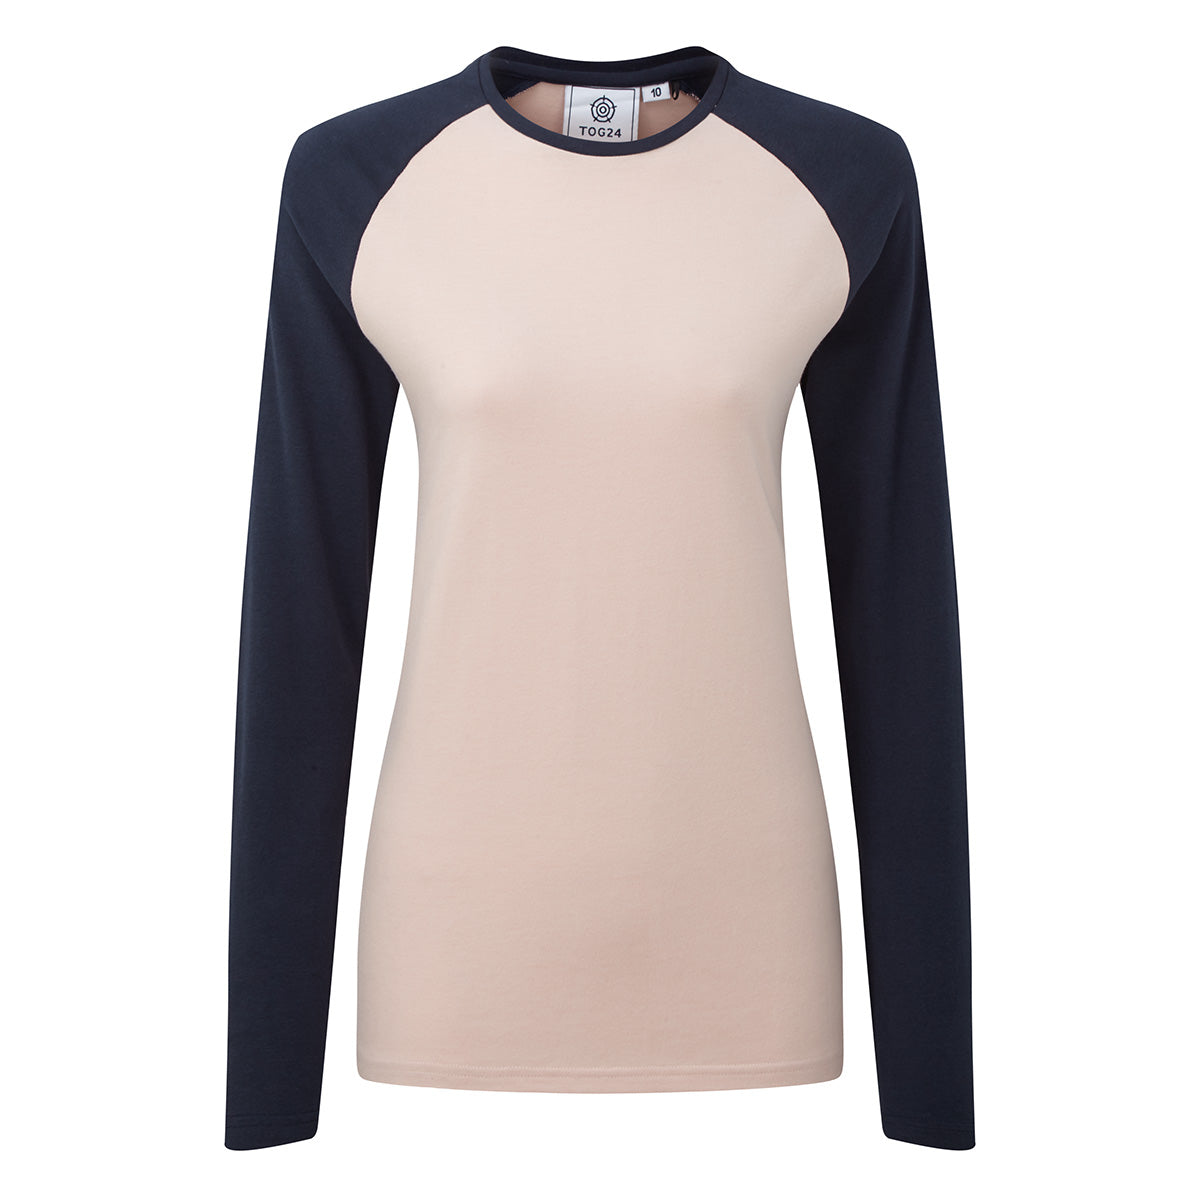 Thirn Womens Long Sleeve Raglan T-Shirt - Rose Marl/Dark Indigo image 4